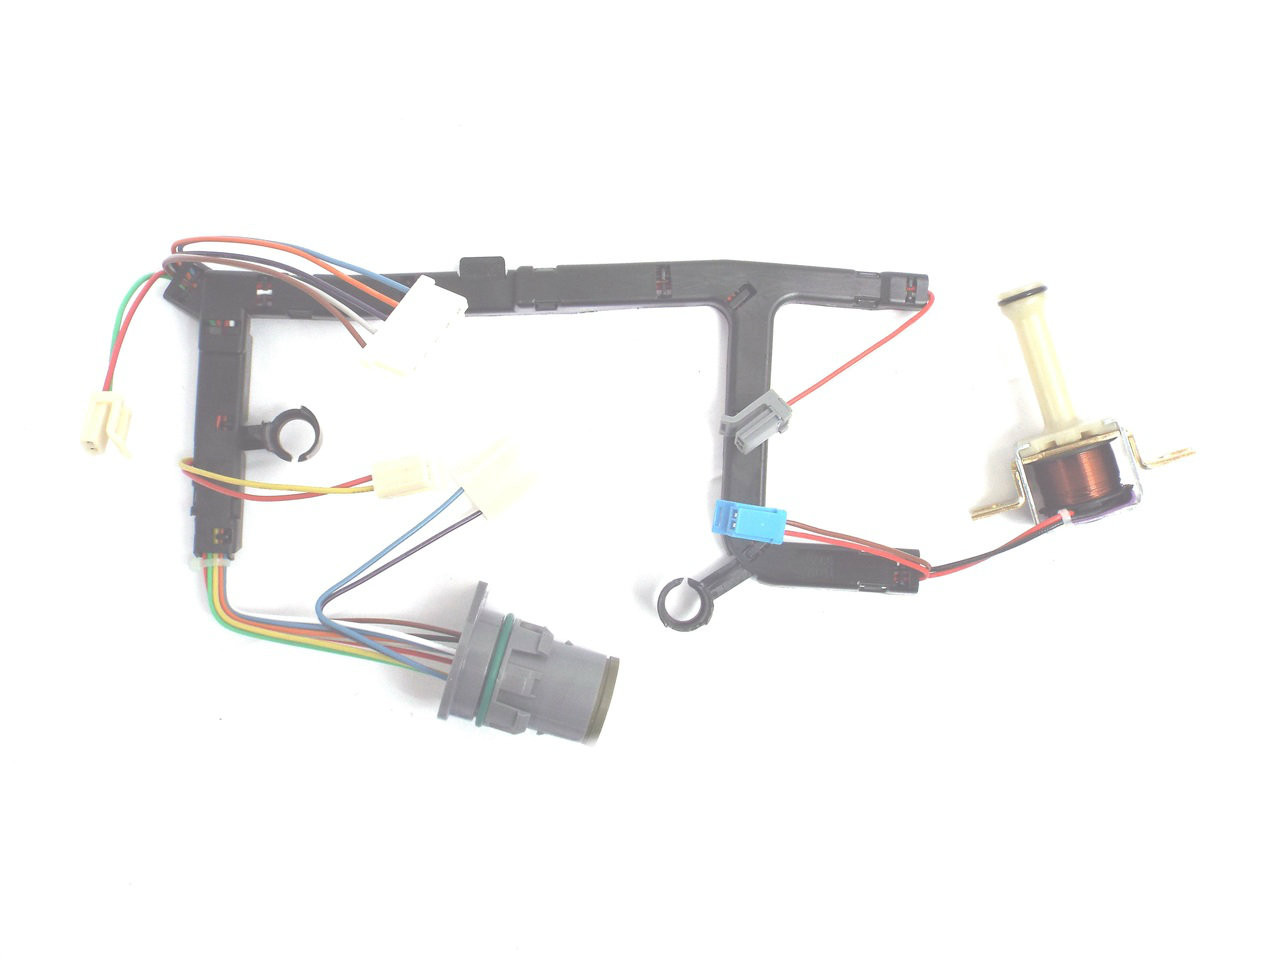 hight resolution of gm 4l60e transmission wiring harness from global transmission parts 1997 2003